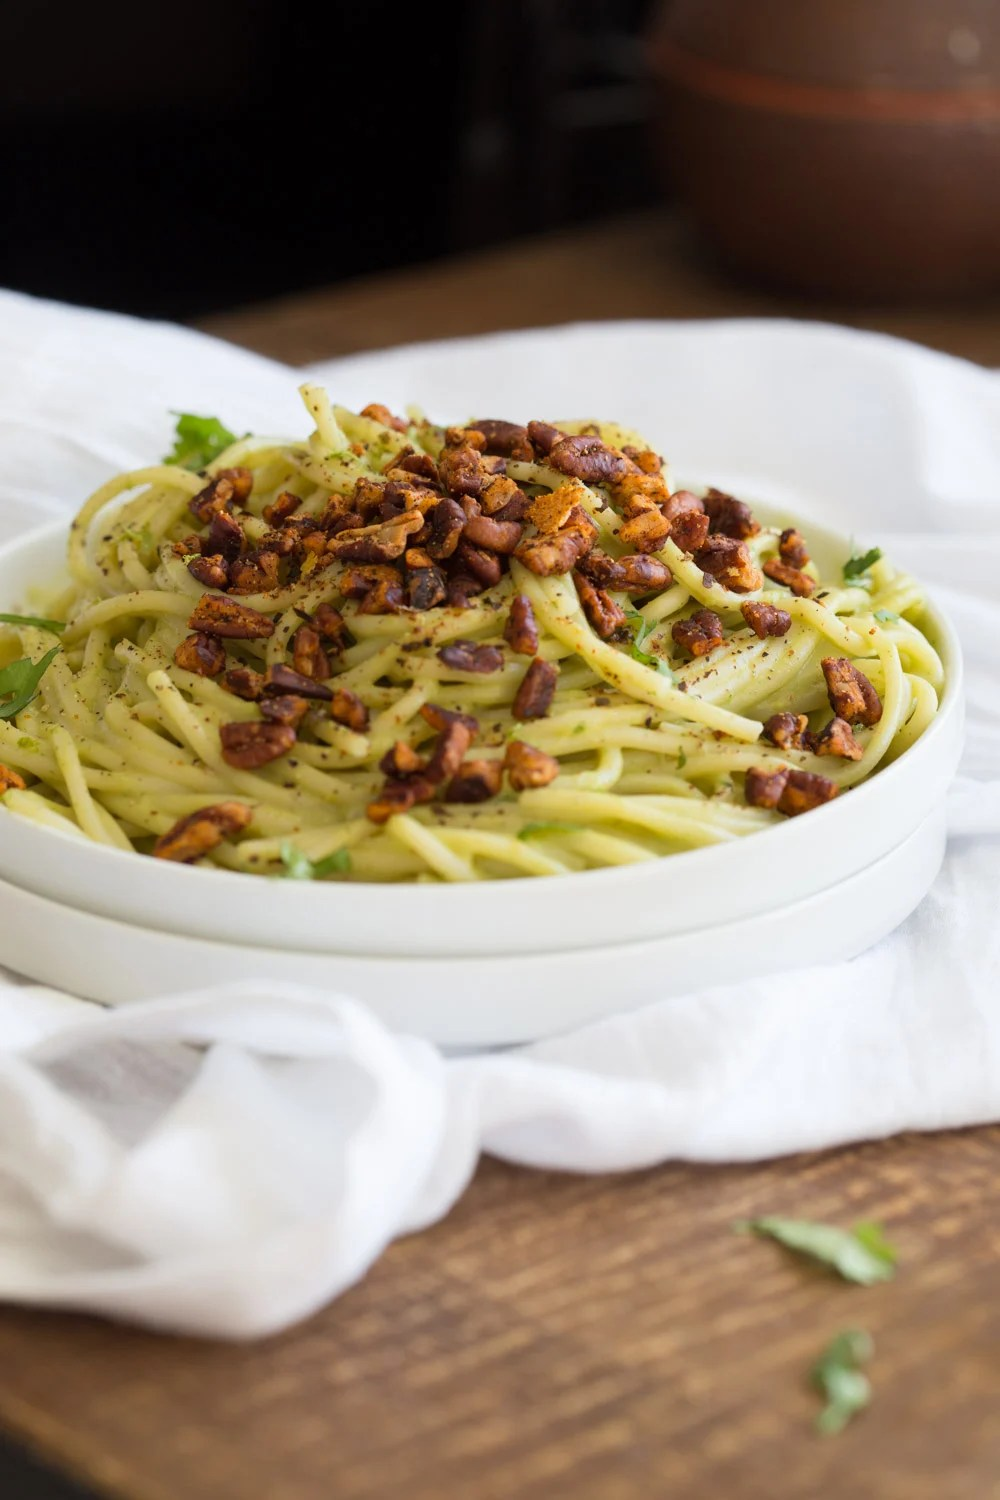 Avocado Pasta with Smoky Pecans. This 20 Minute Creamy Avocado Basil Sauce is great over spaghetti or zoodles. Serve with smoky spicy pecans for amazing flavor. #Vegan #Soyfree #Recipe. Can be #nutfree.#veganricha | VeganRicha.com